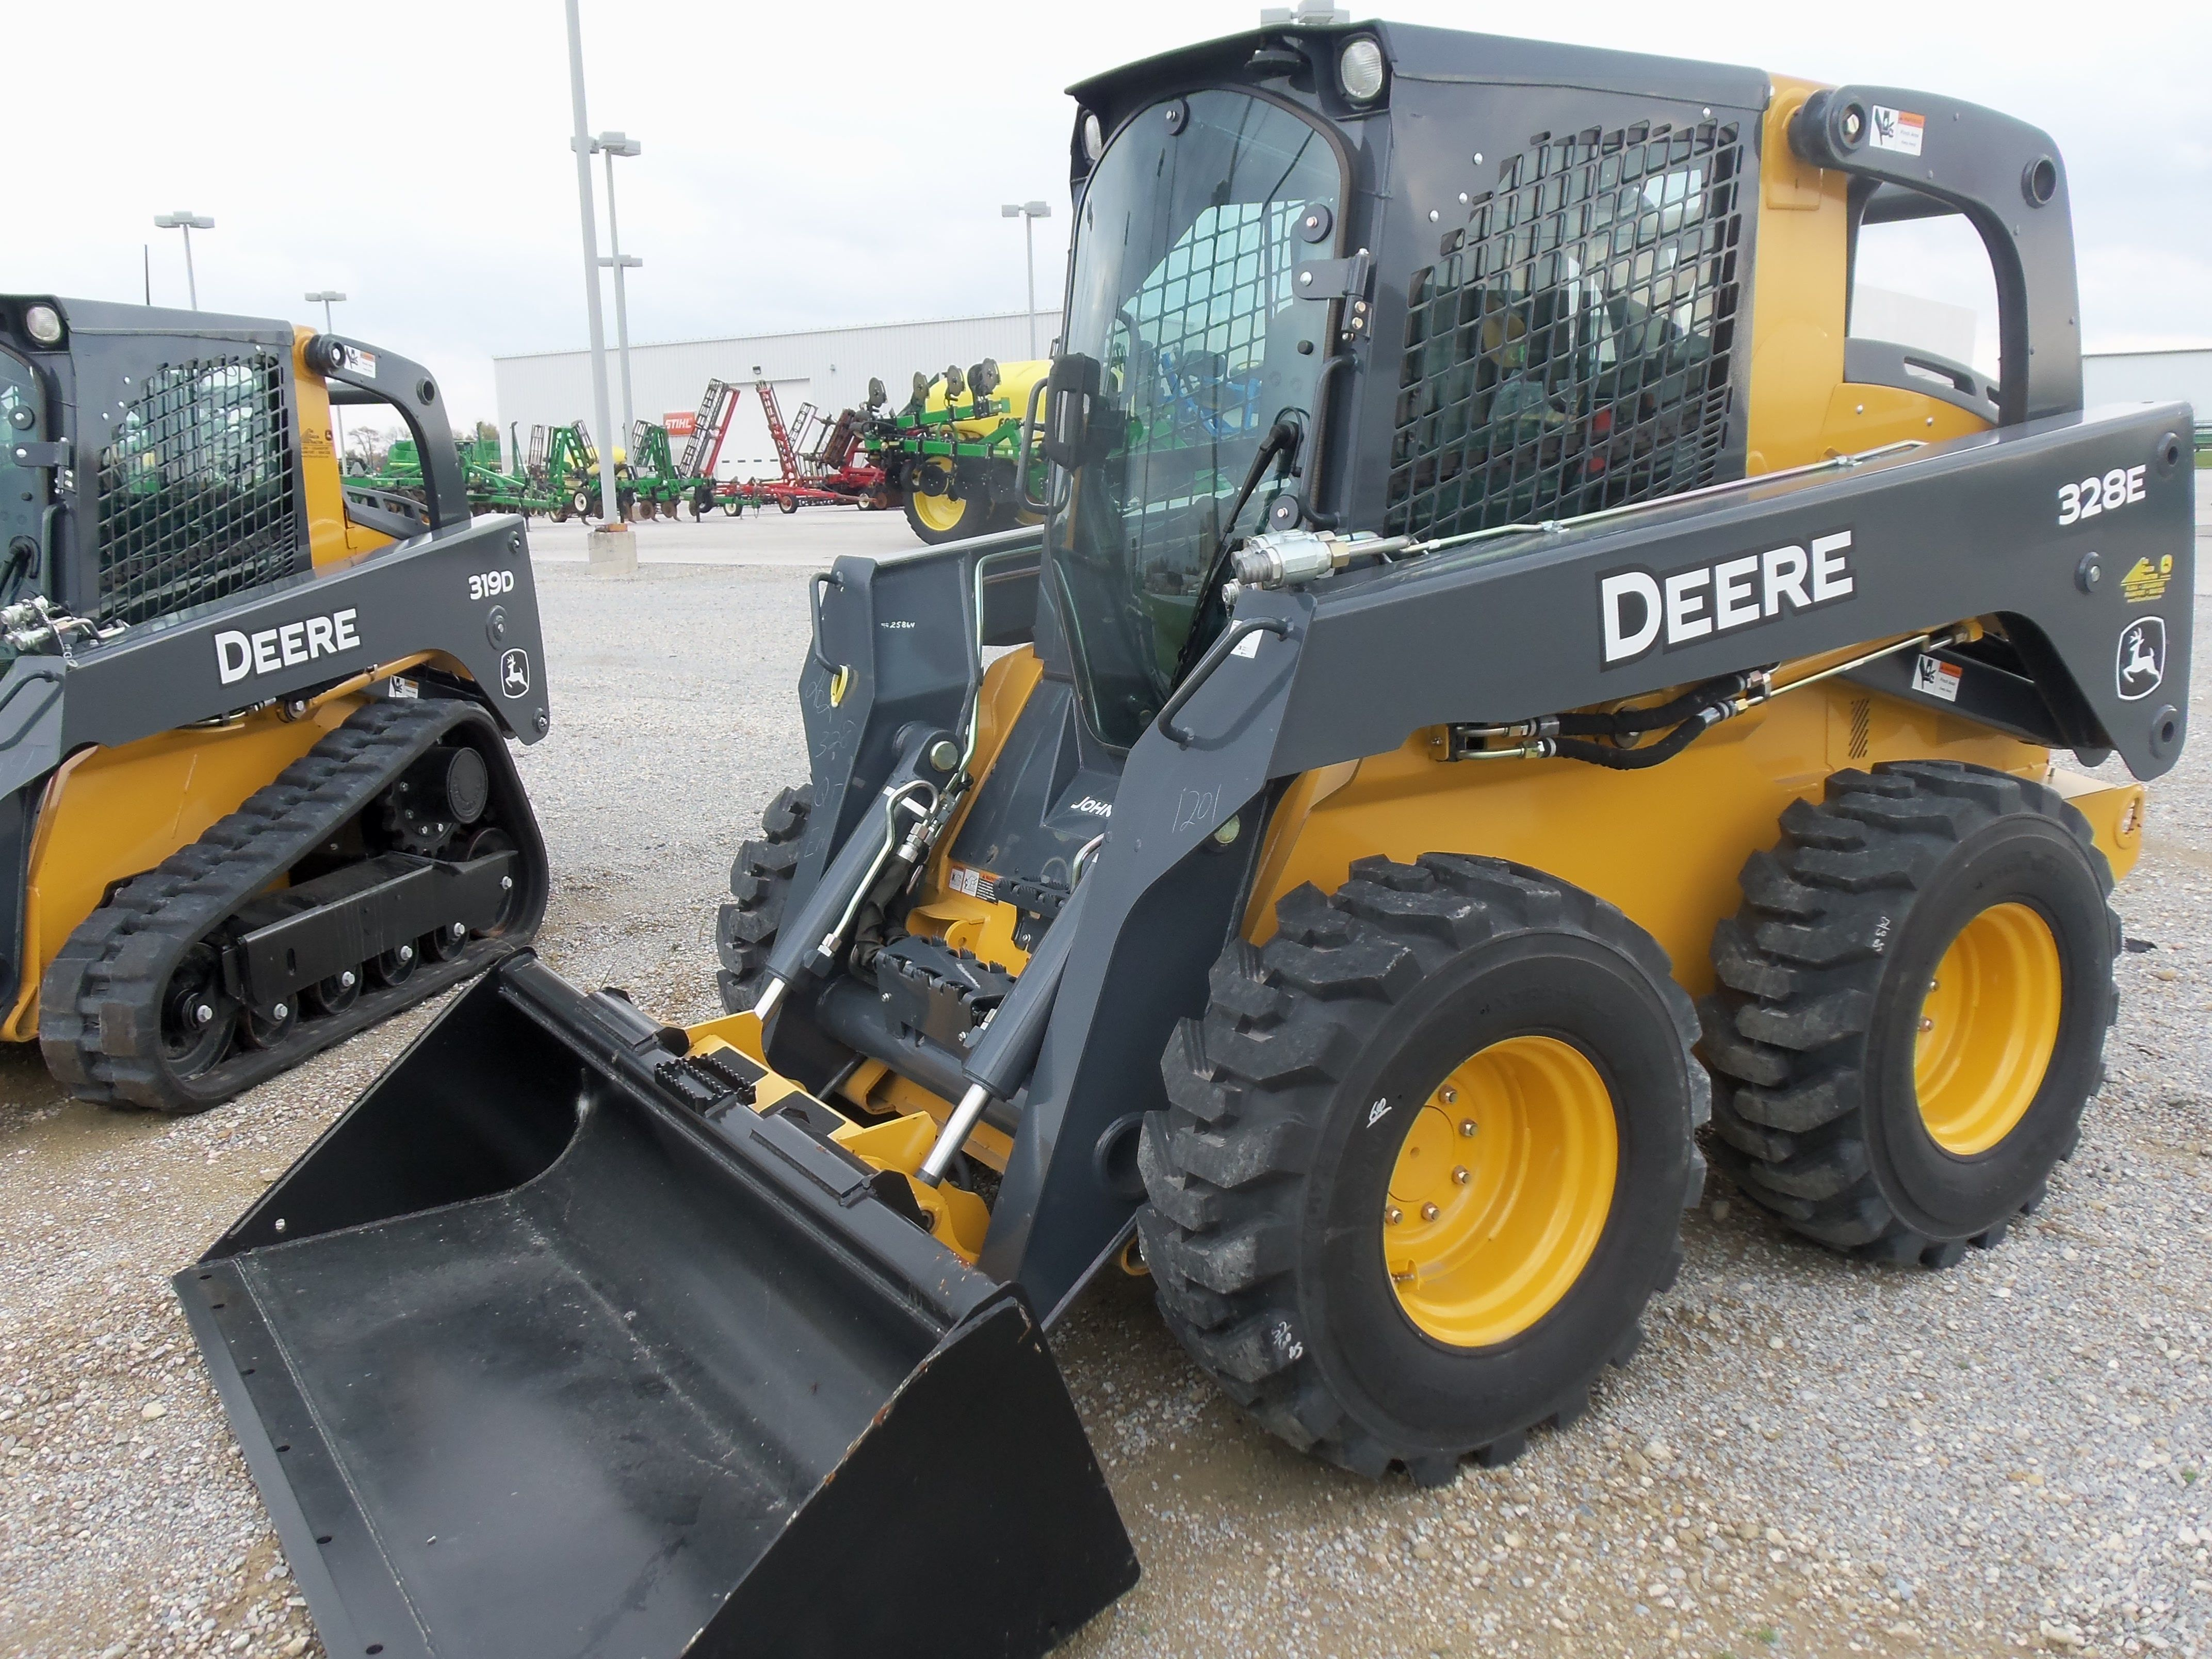 John Deere Skid Steer >> New John Deere 328e Skid Steer Loader Jd Construction Equipment